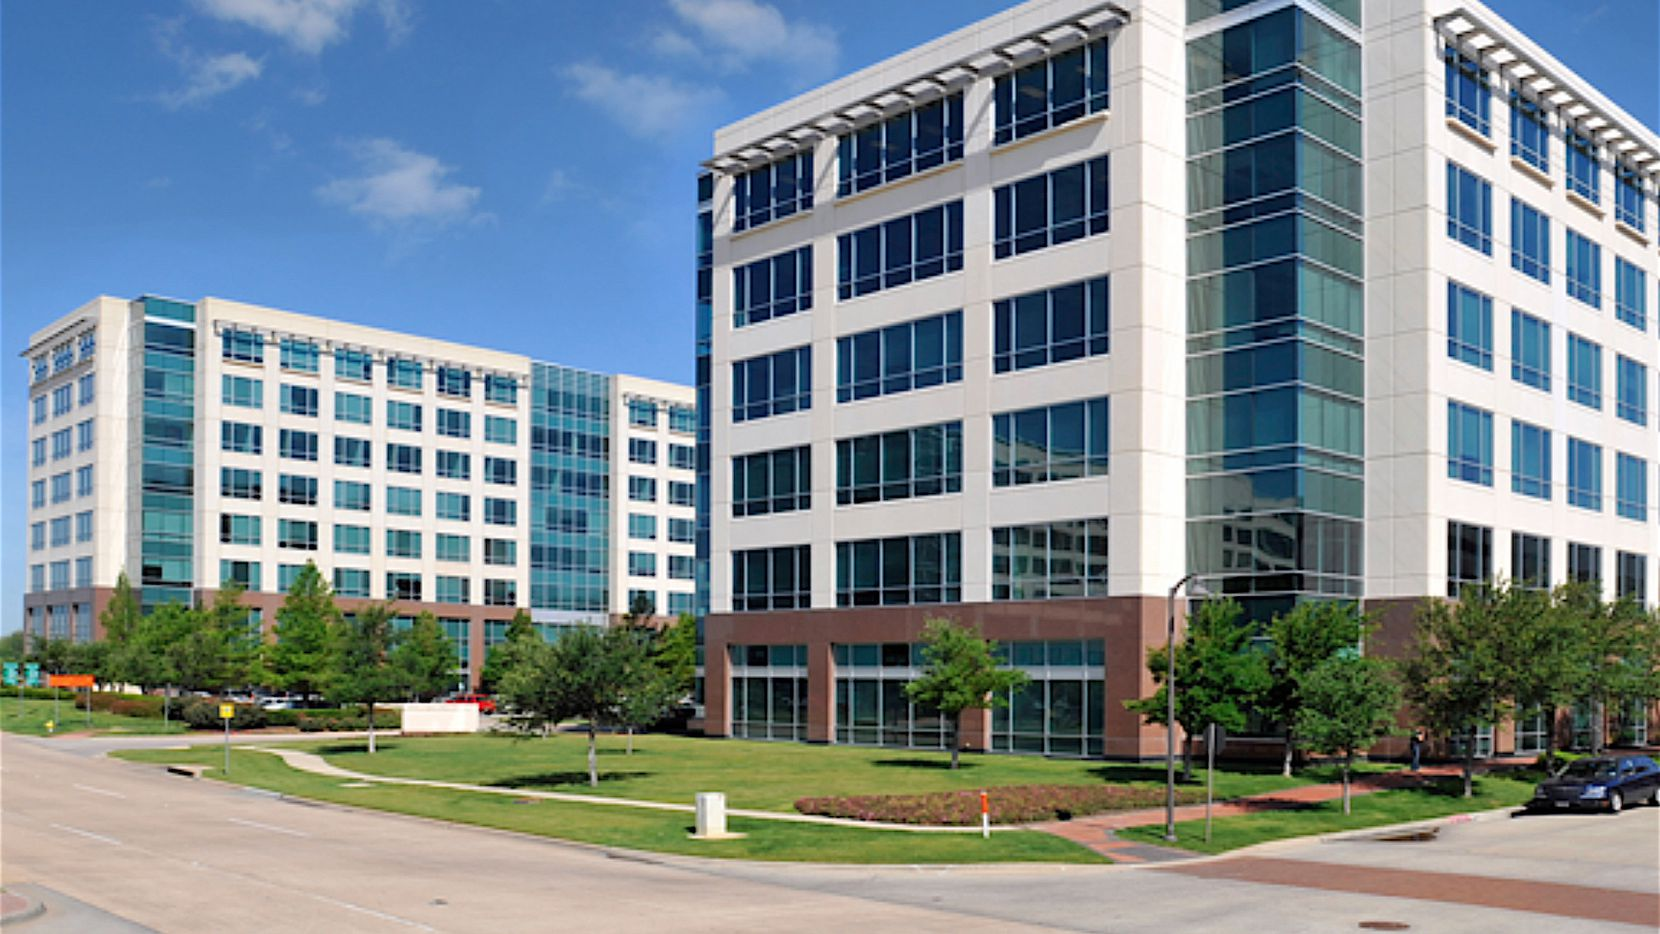 KBS has owned the three Legacy Town Center office buildings for almost a decade.